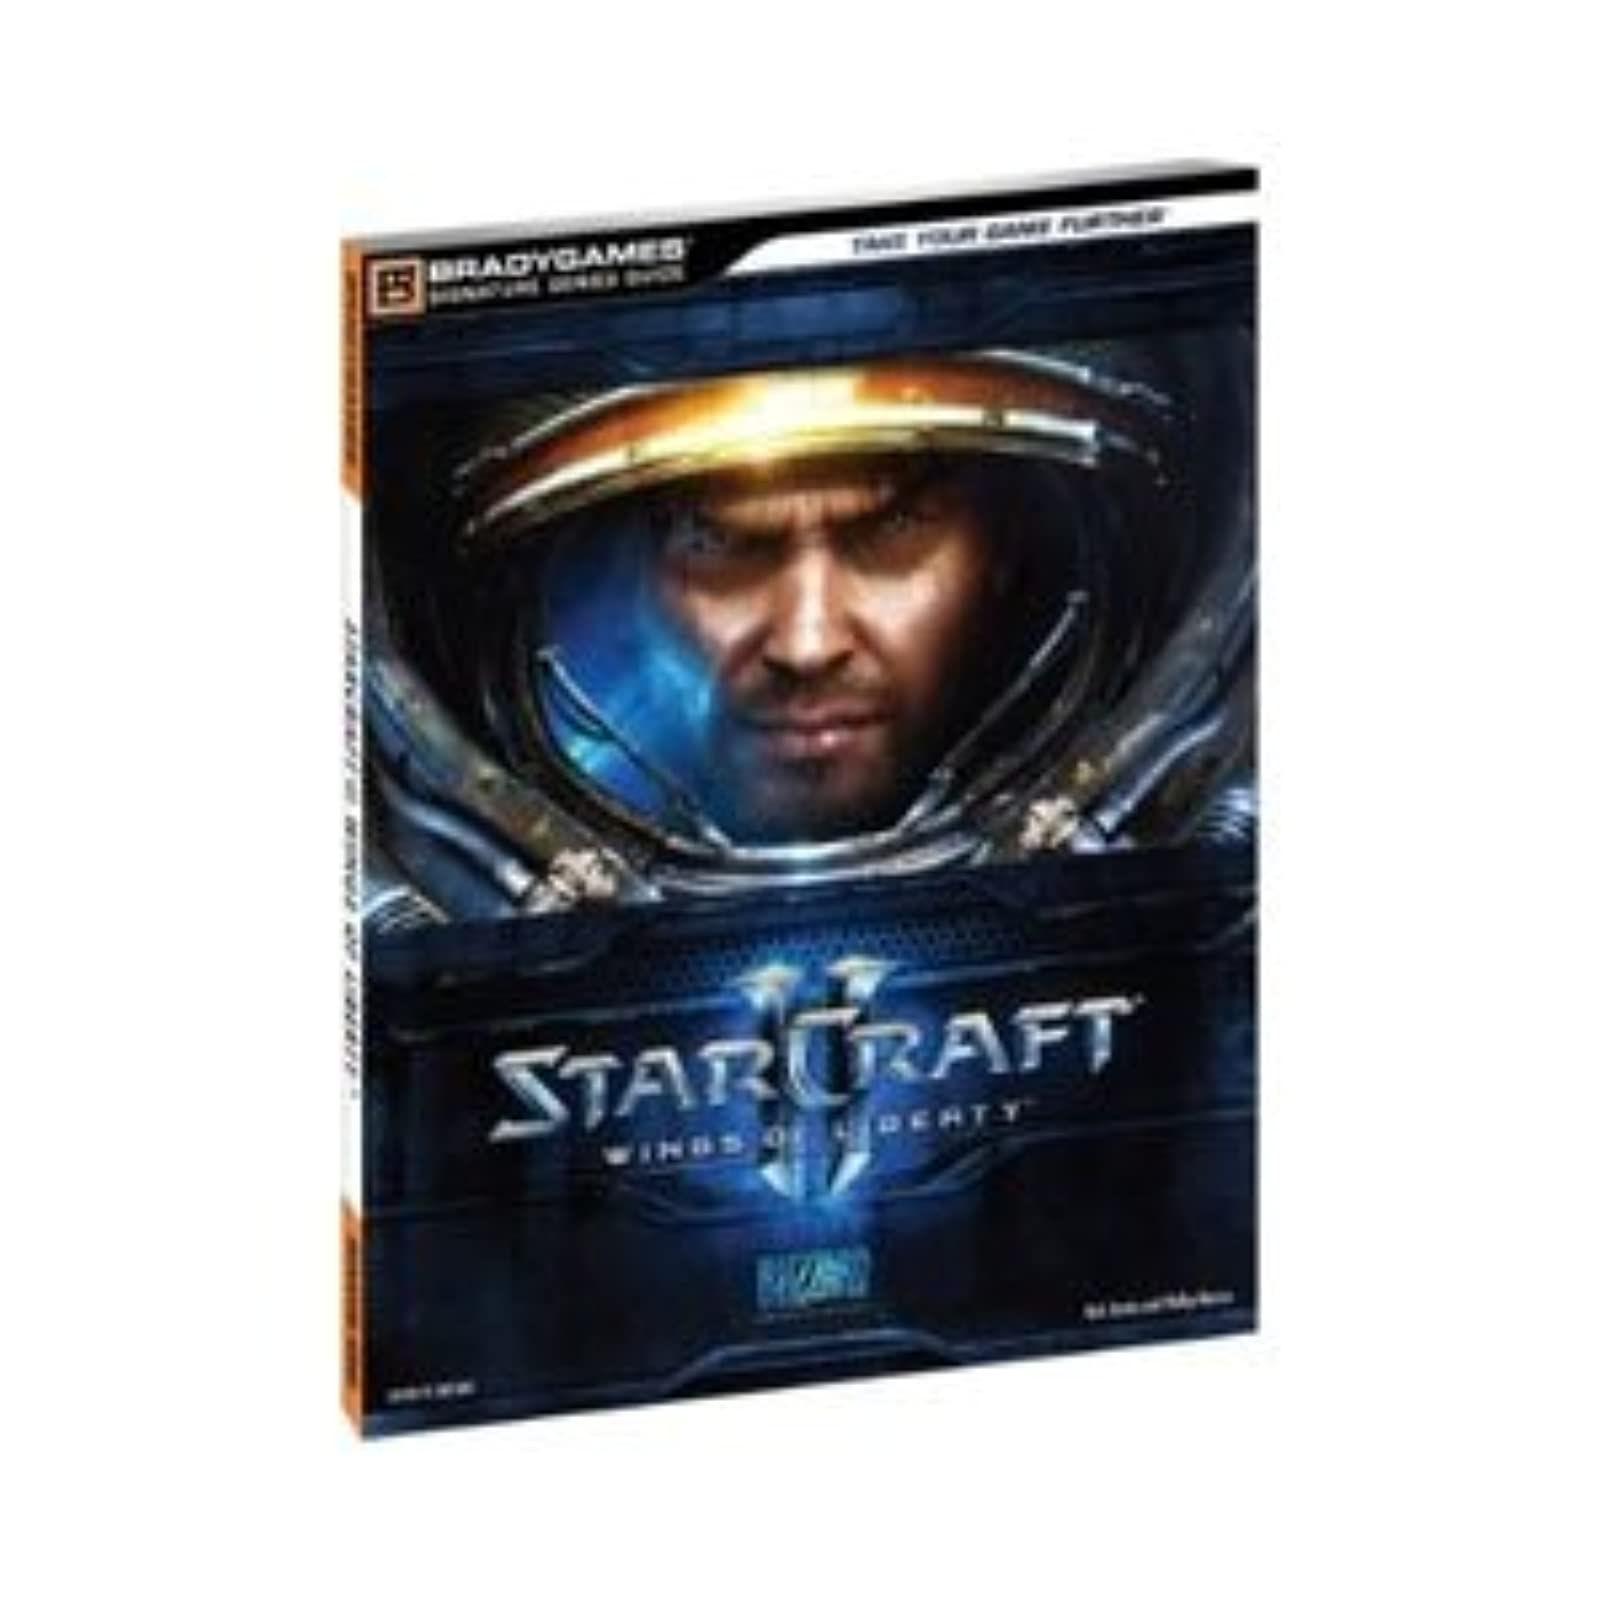 Starcraft II Signature Series Guide Strategy Guide